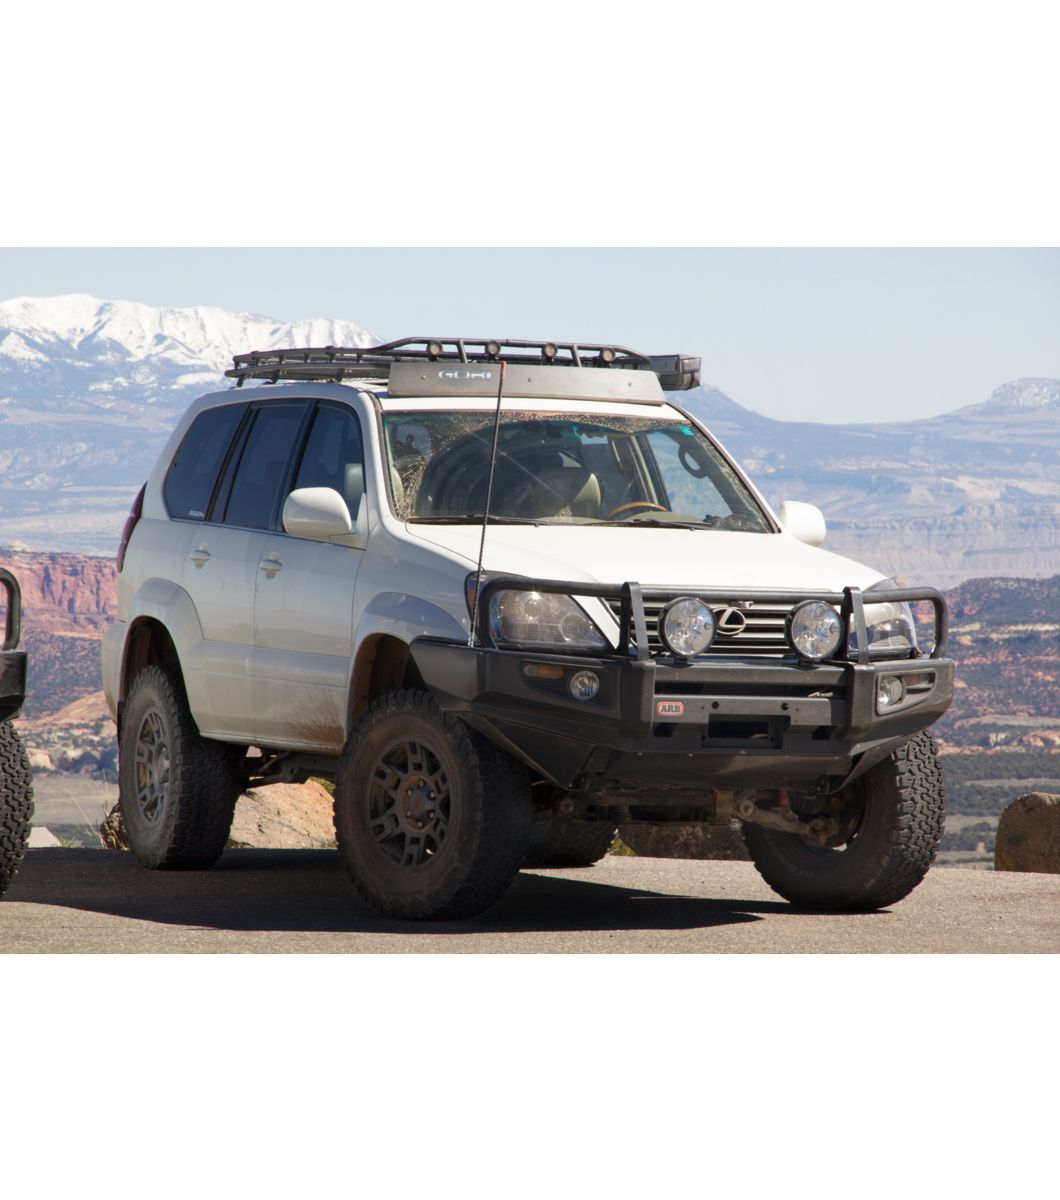 Gobi Lexus Gx470 Stealth Rack With Sunroof Multi Light Setup Lexus Gx470 Lexus Gx Lexus 470